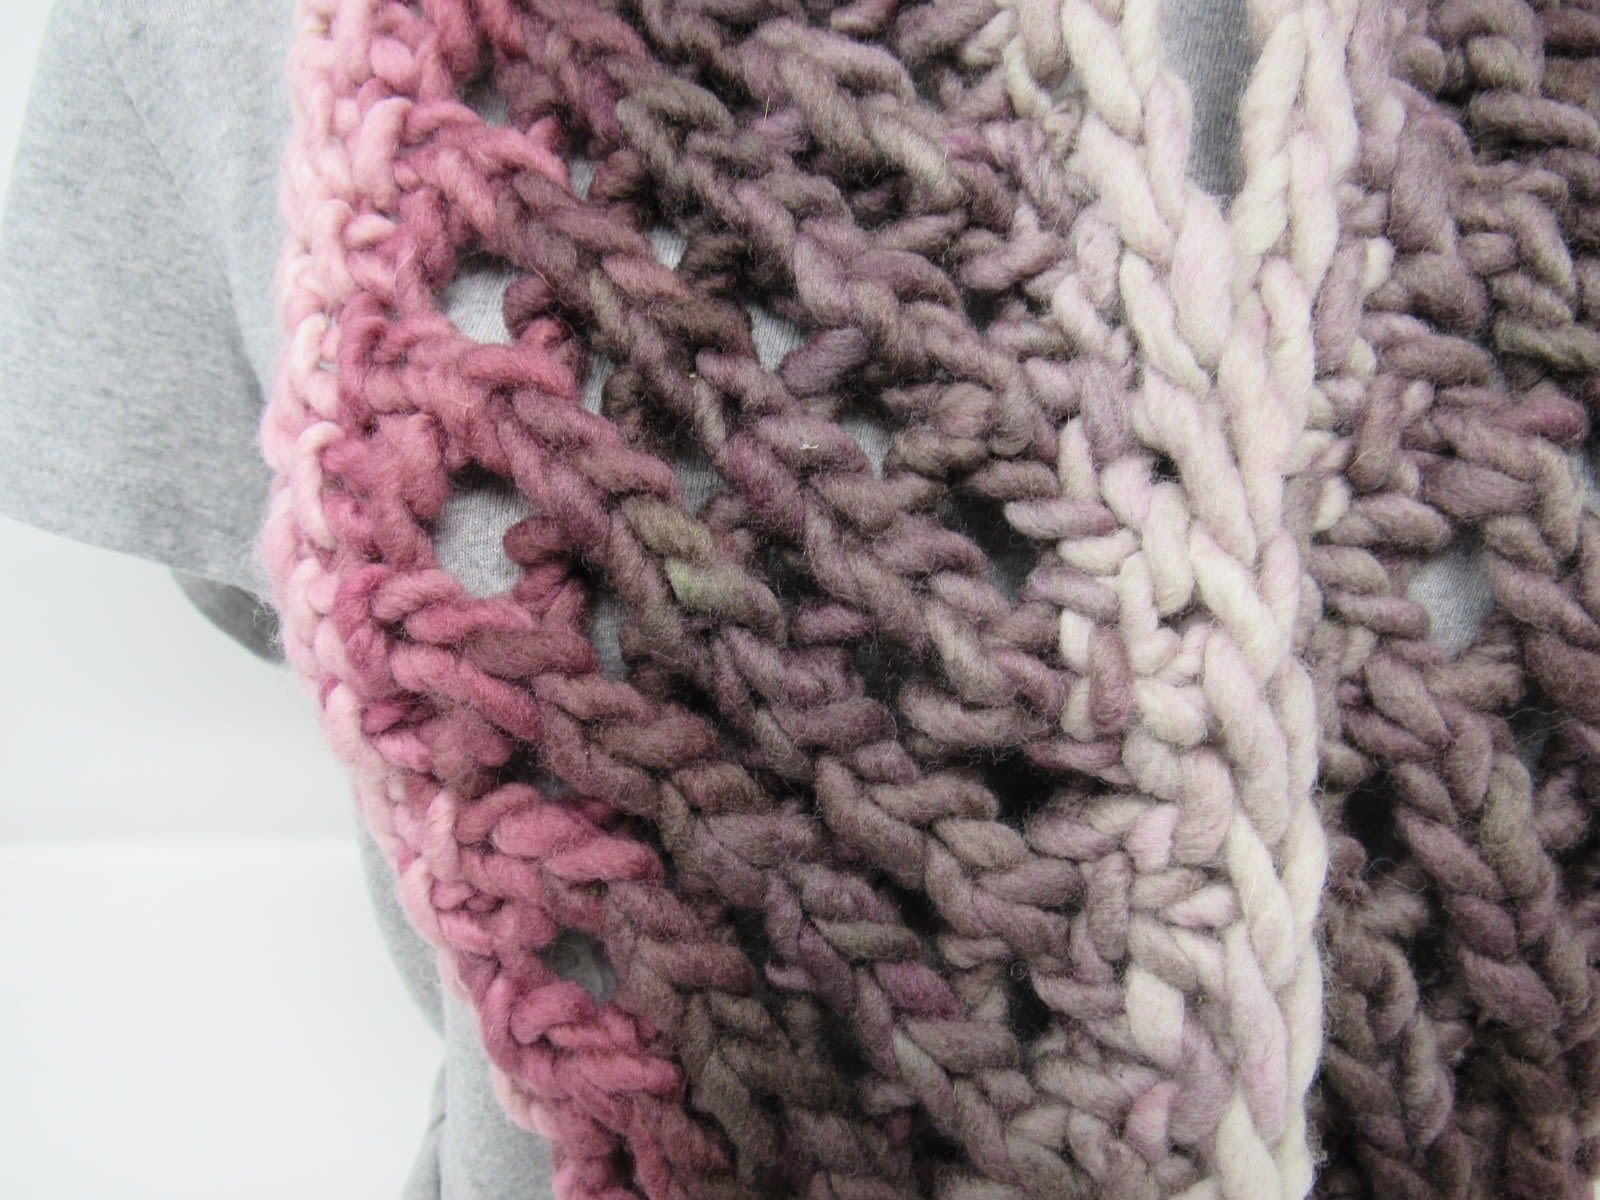 Handcrafted Knitted Cowl Rose/Gray Textured 100% Merino Wool Female Adult